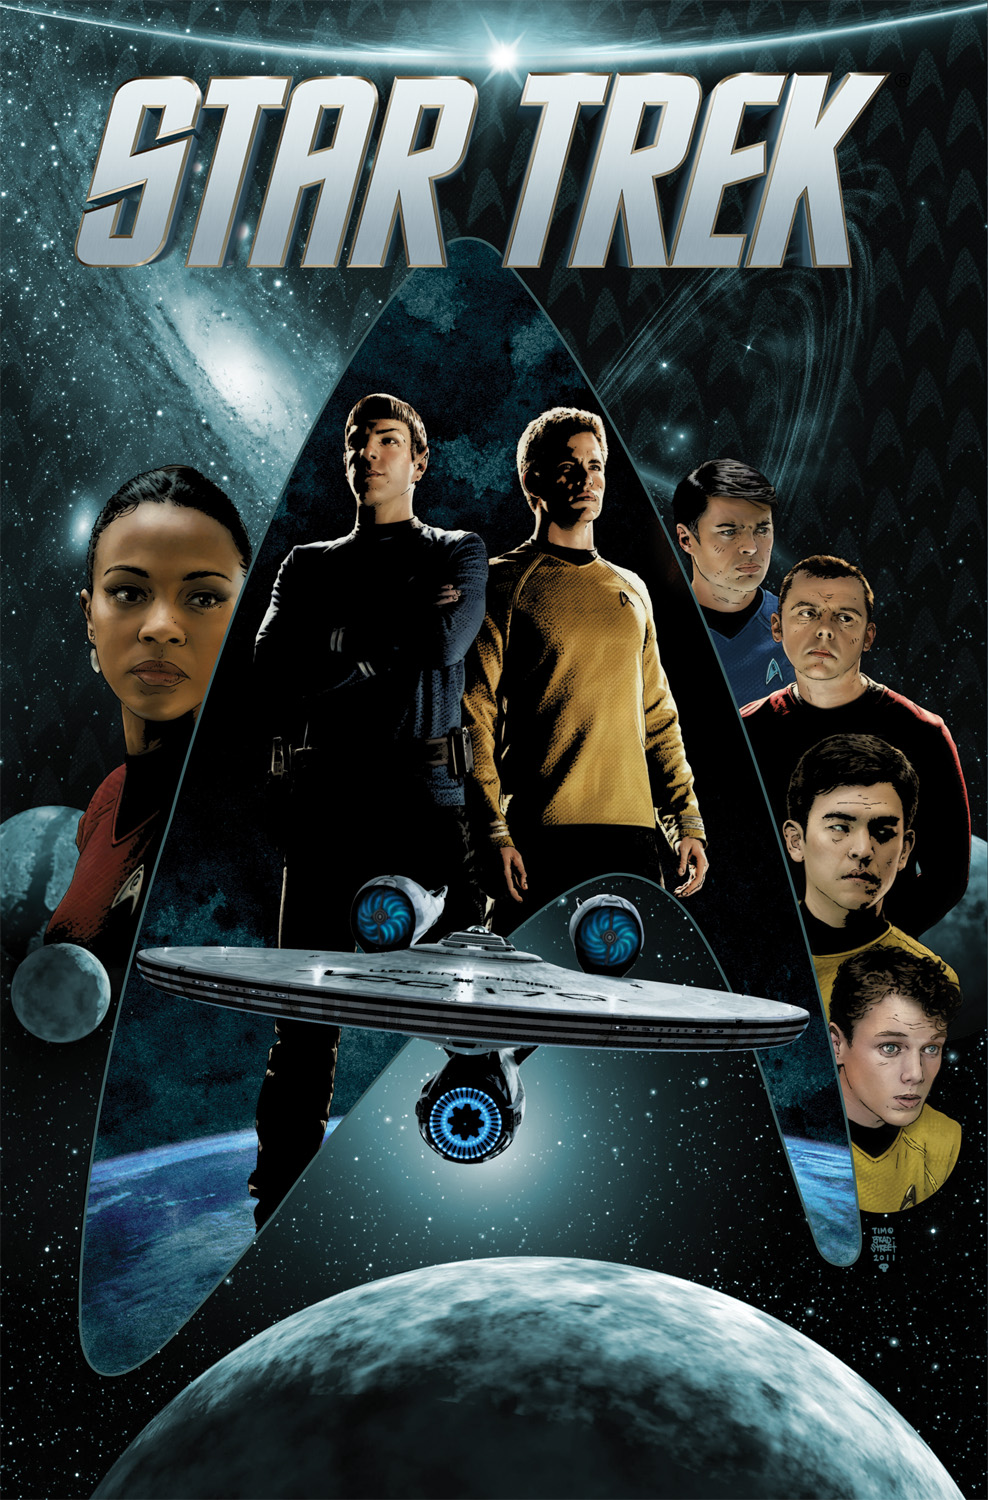 Star Trek, Vol. 1 cover